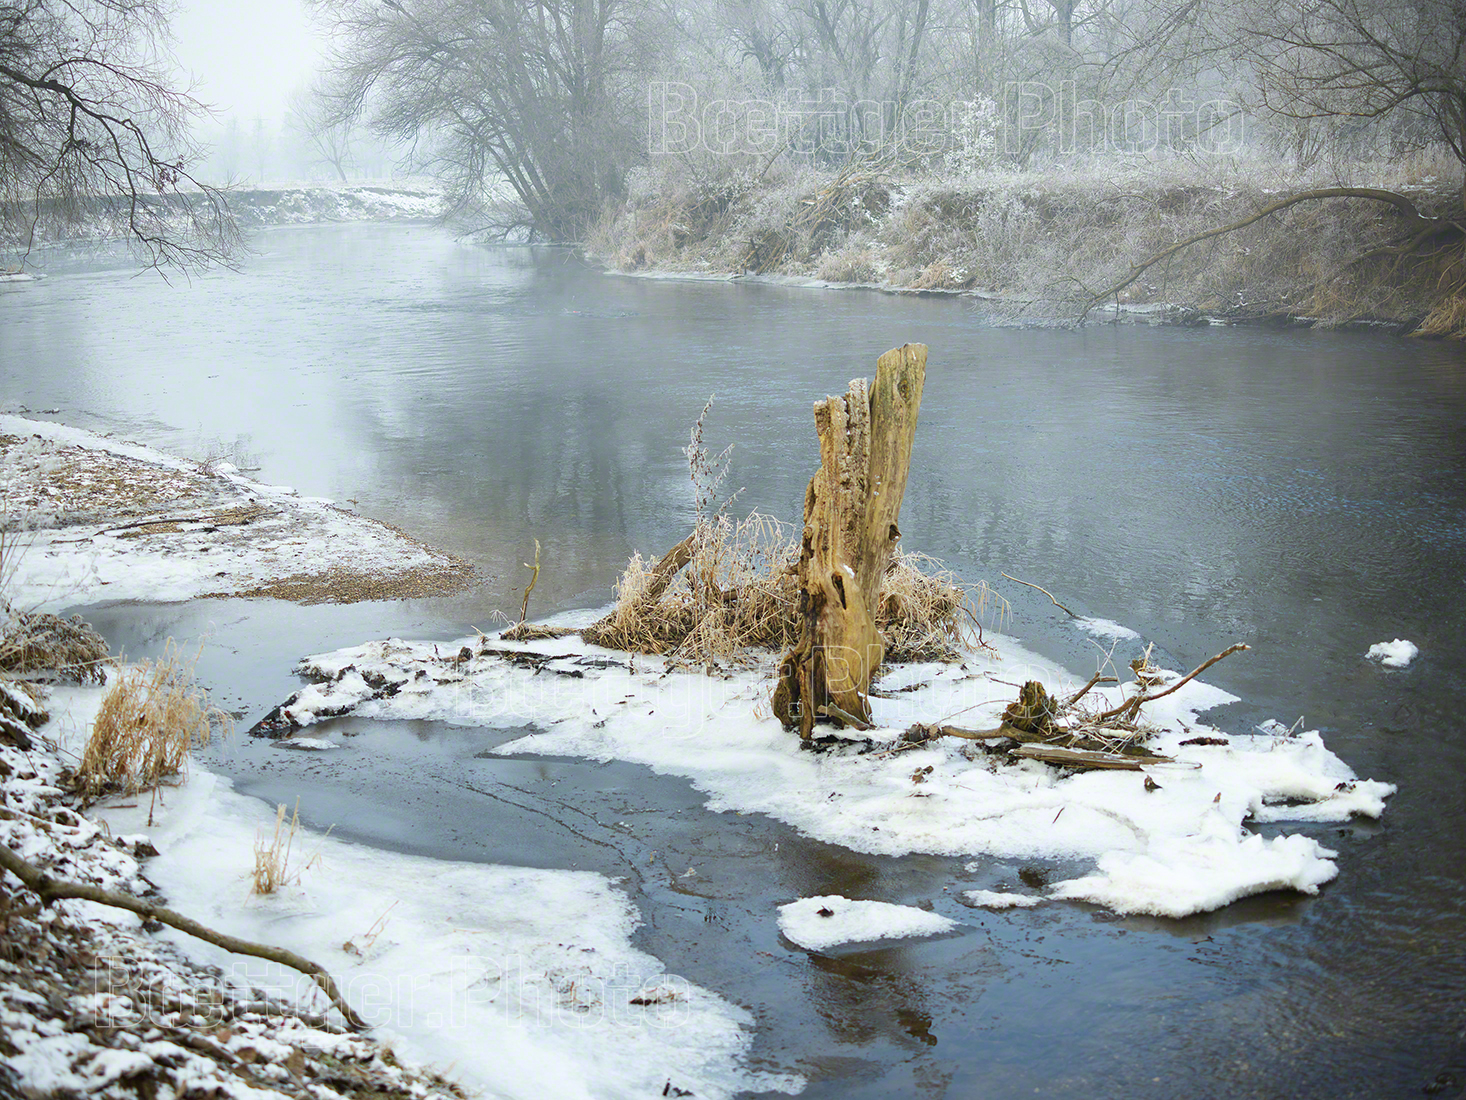 Winter an der Elster